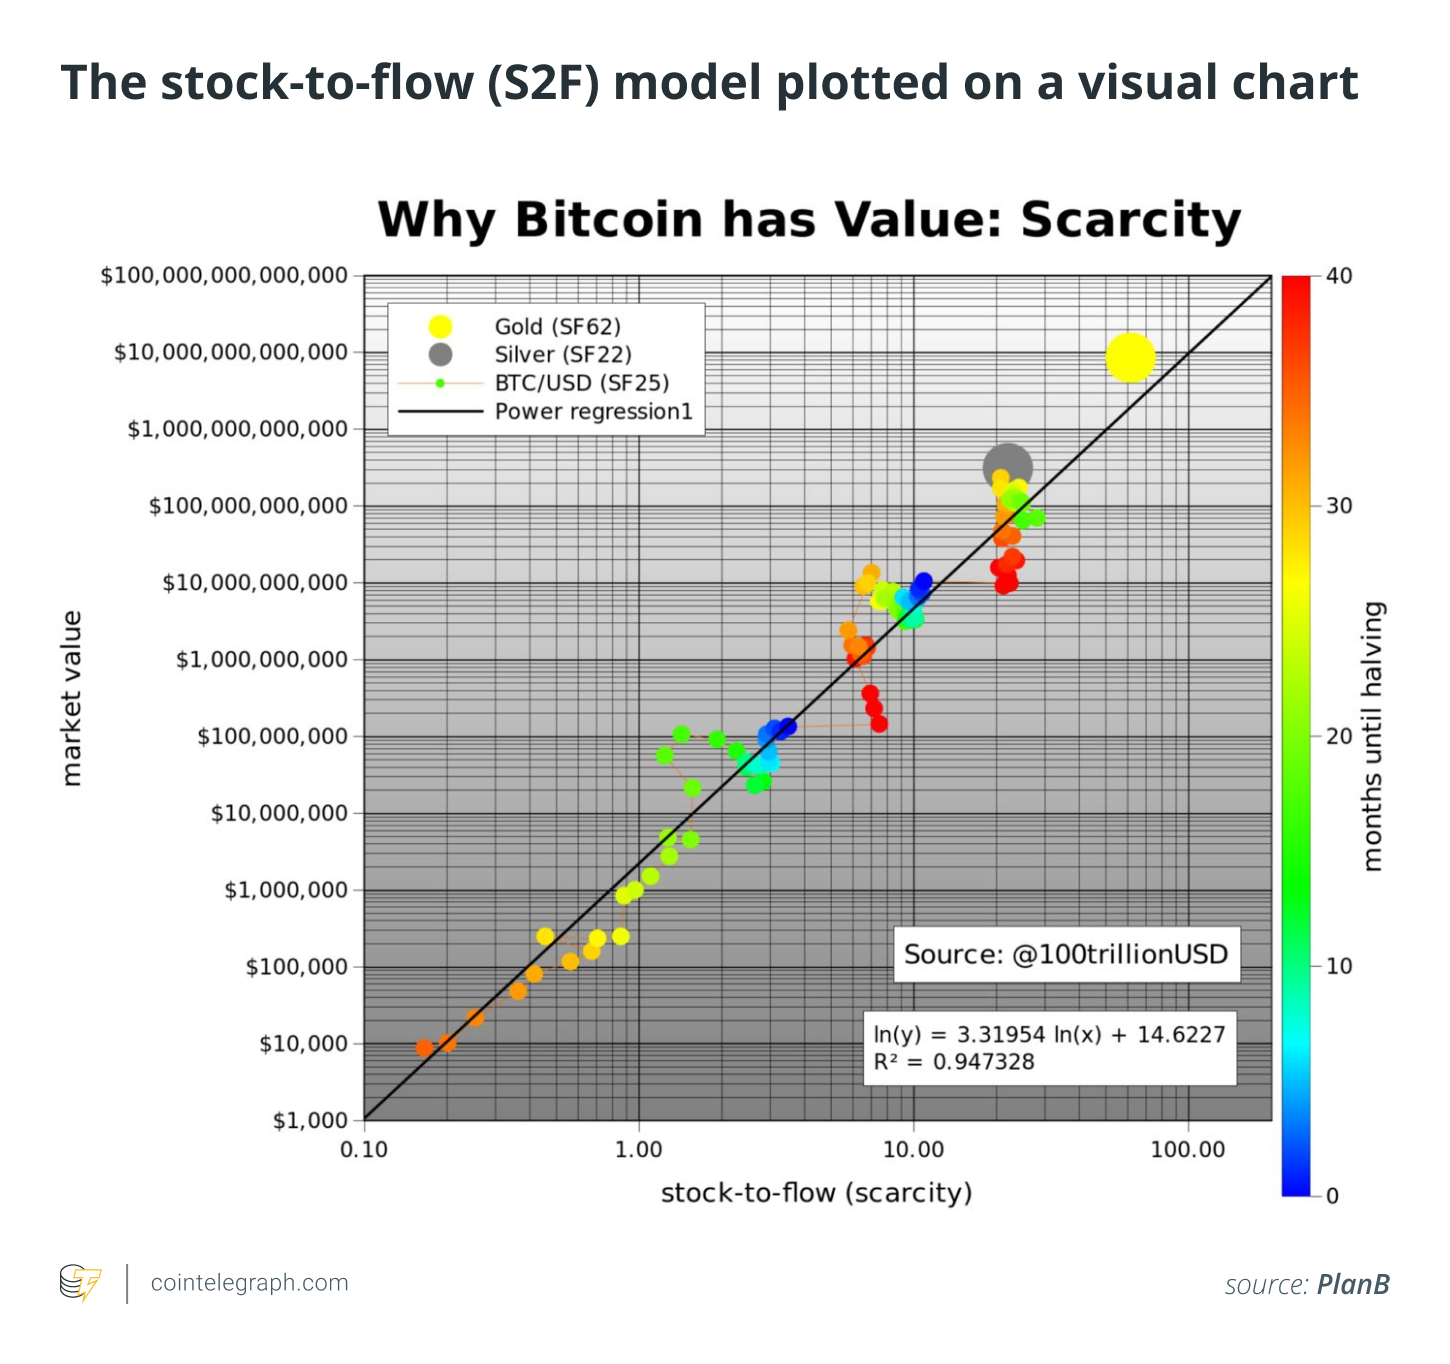 The stock-to-flow (S2F) model plotted on a visual chart